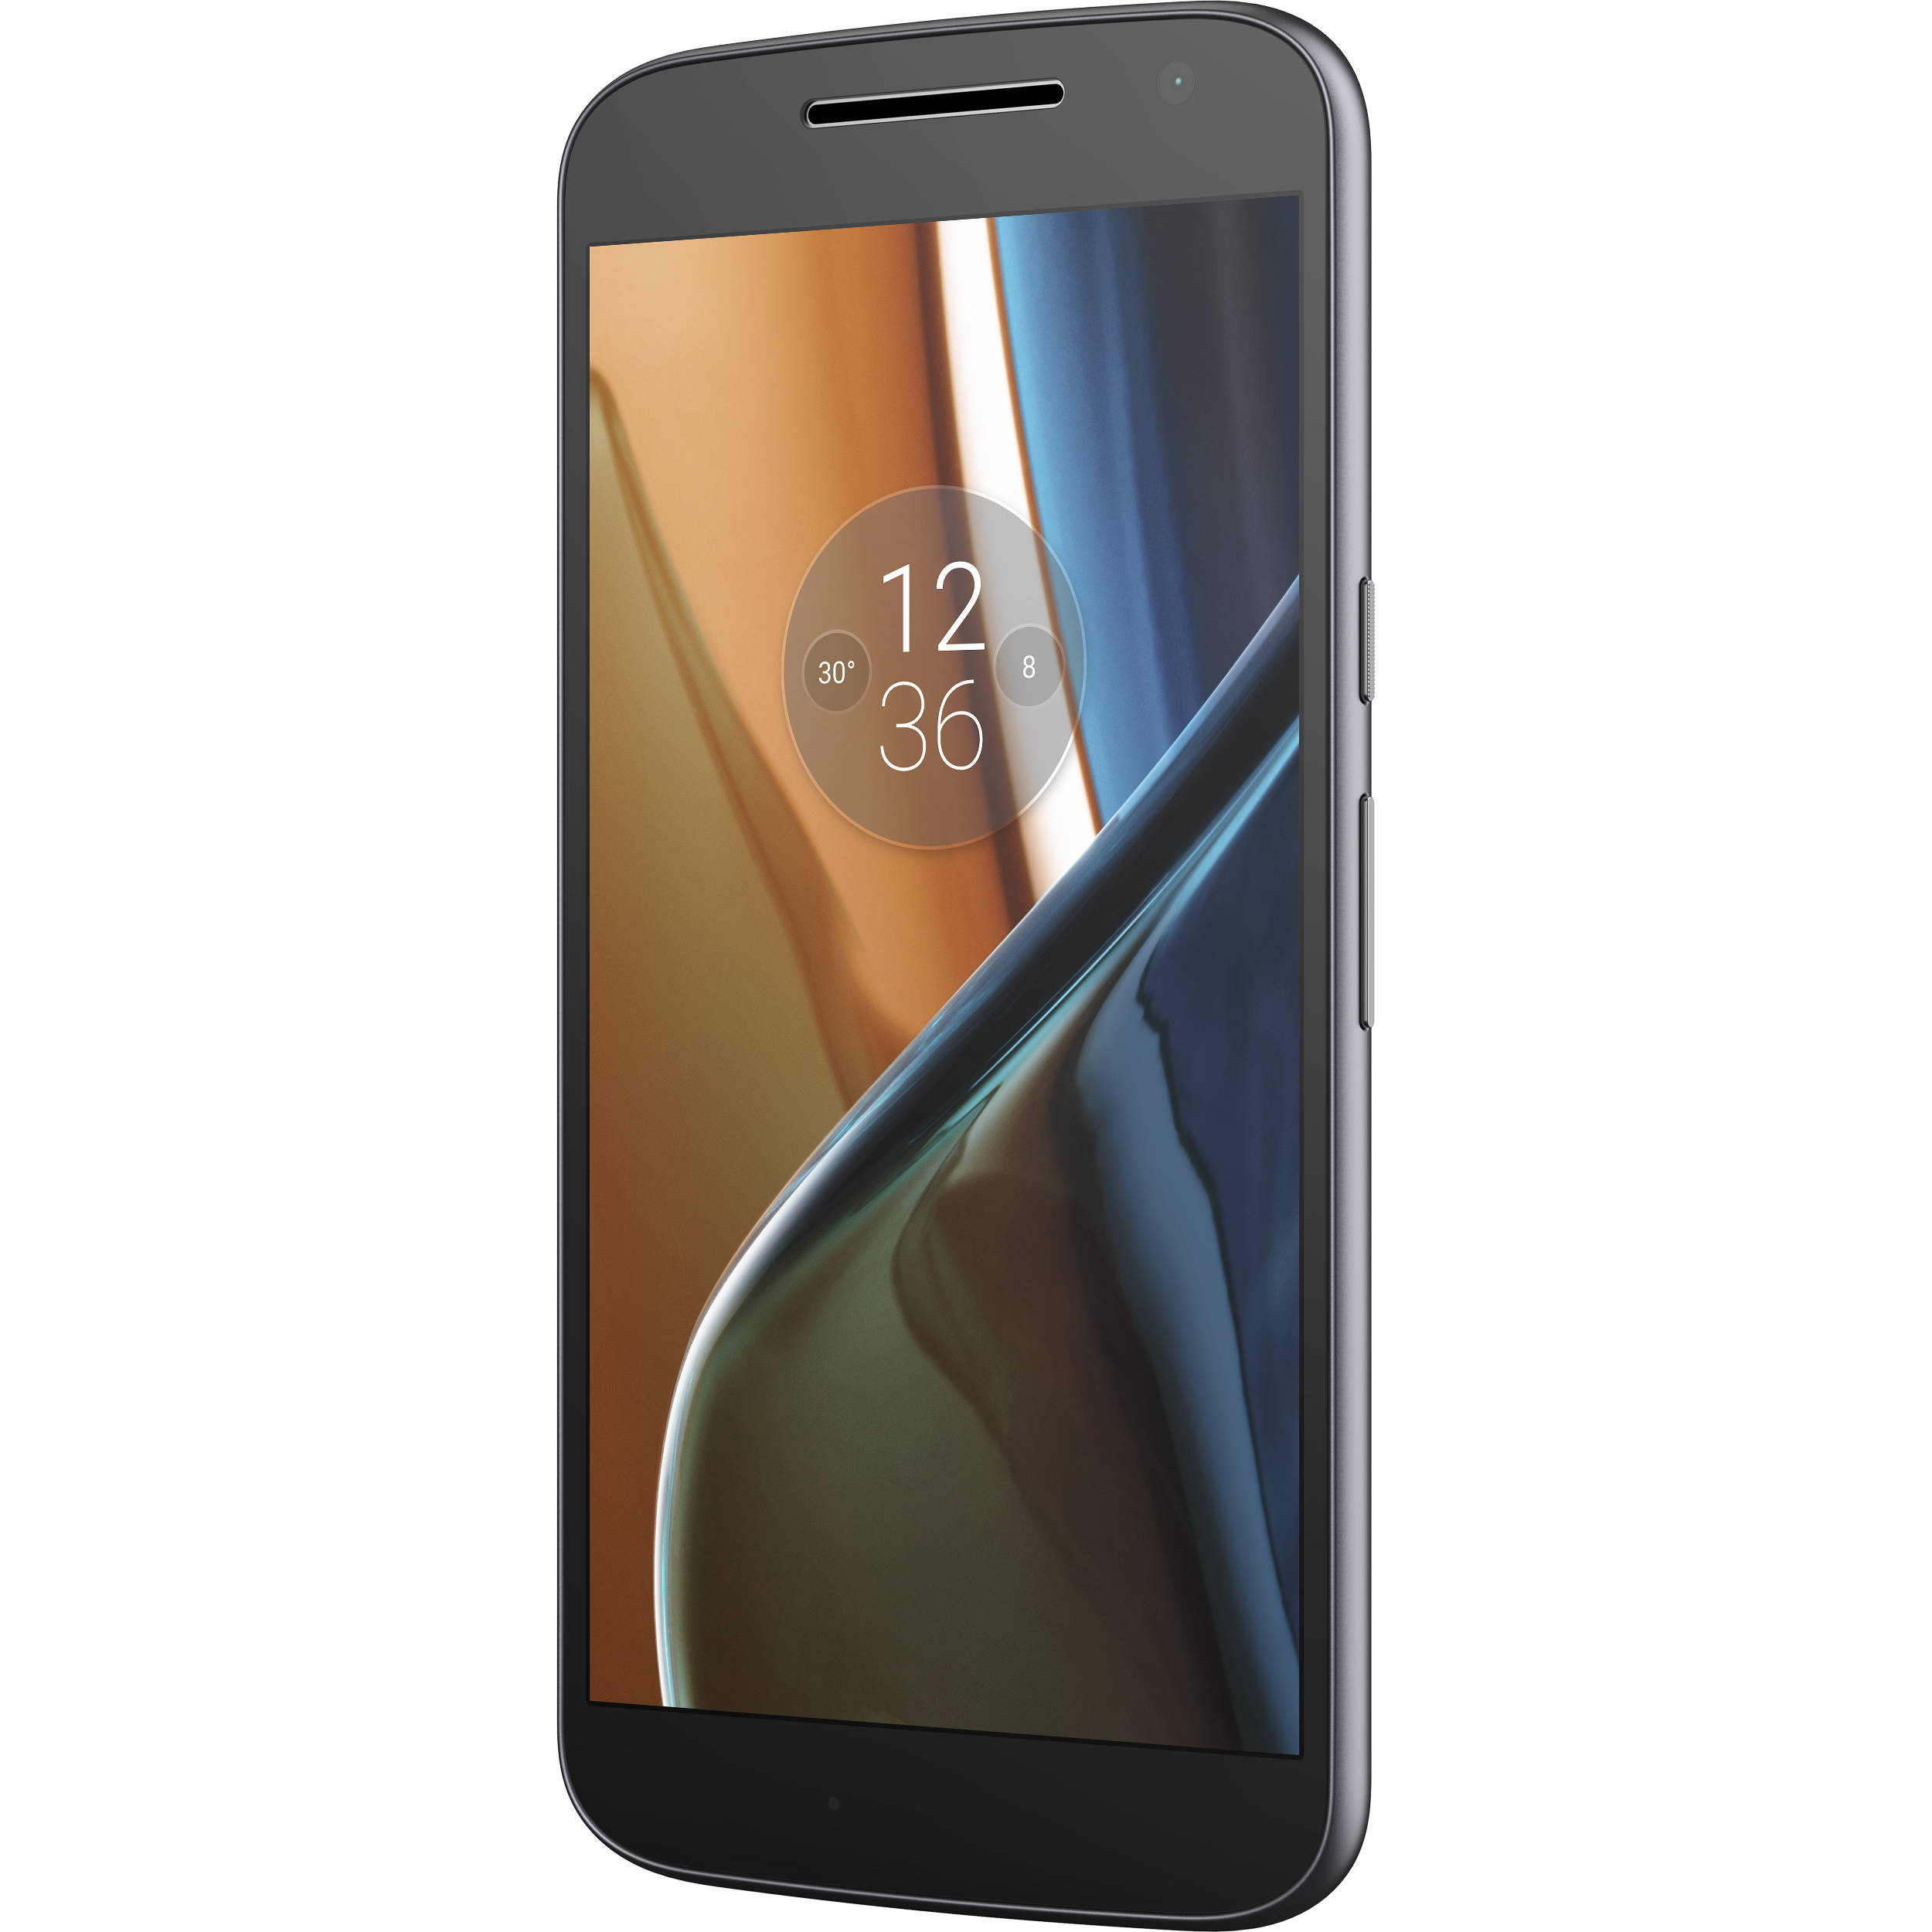 motorola 4th generation. moto g xt1625 4th gen. 32gb smartphone (unlocked, black) motorola generation l